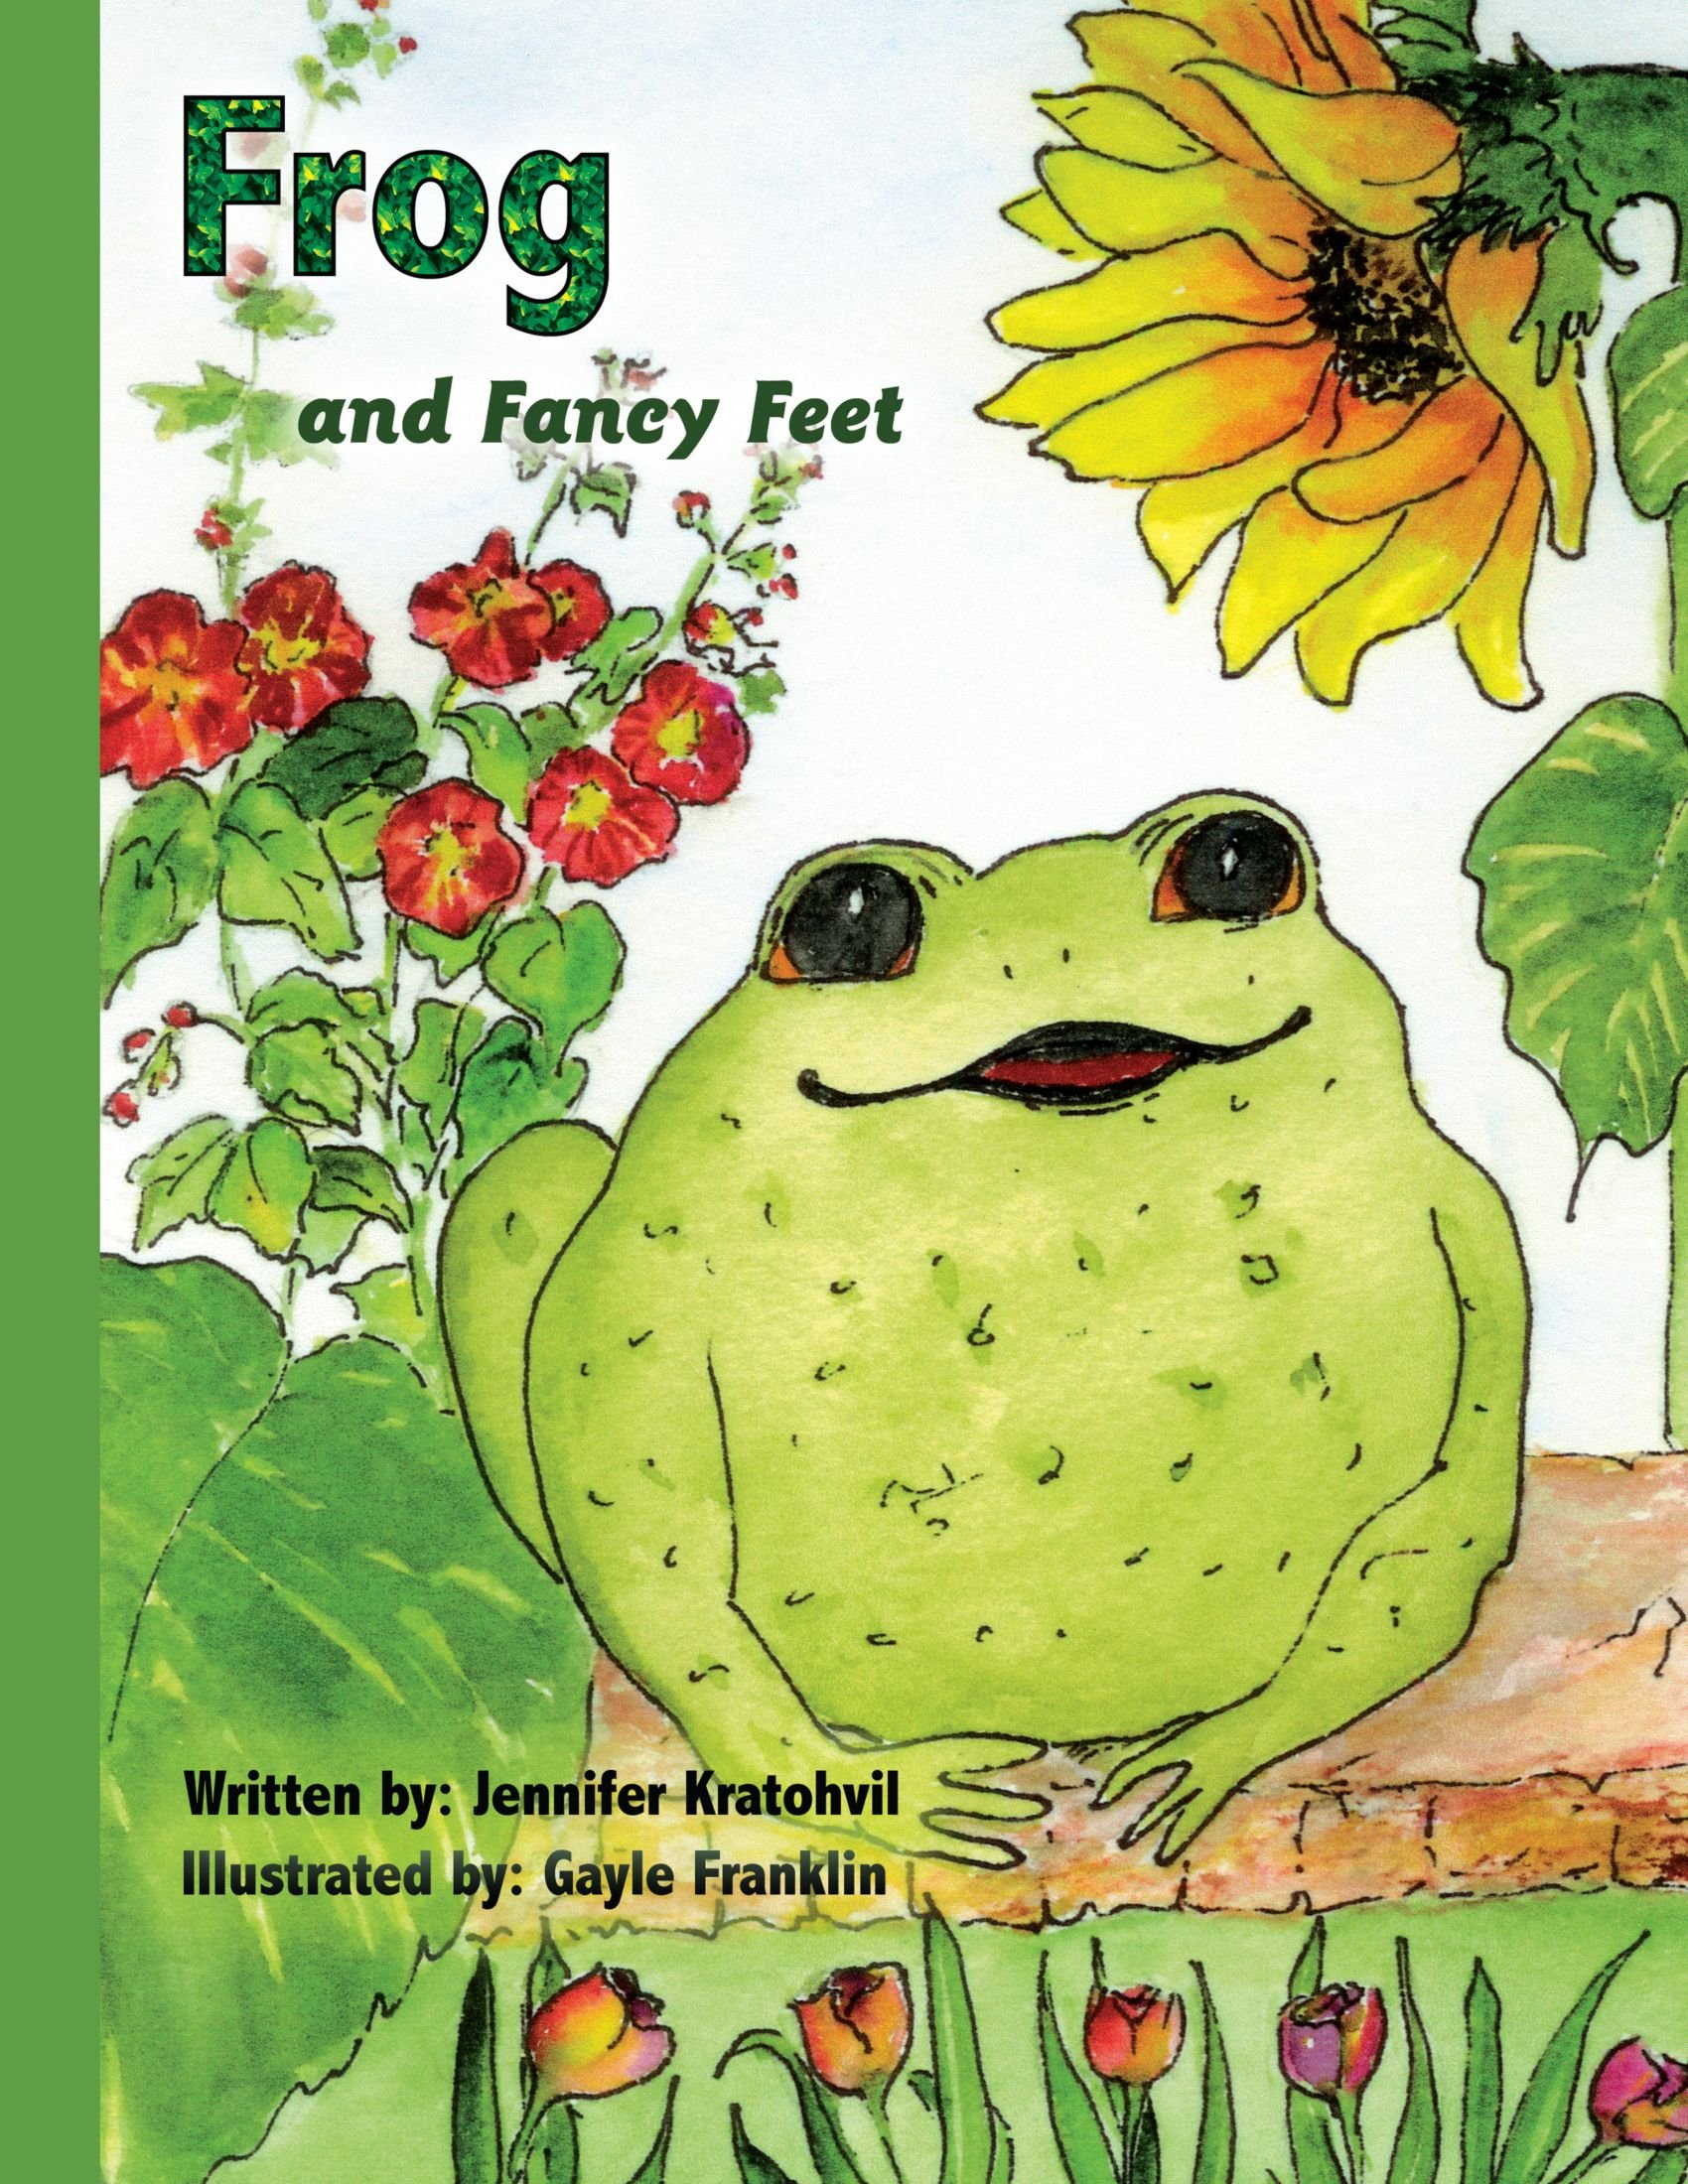 Frog and Fancy Feet